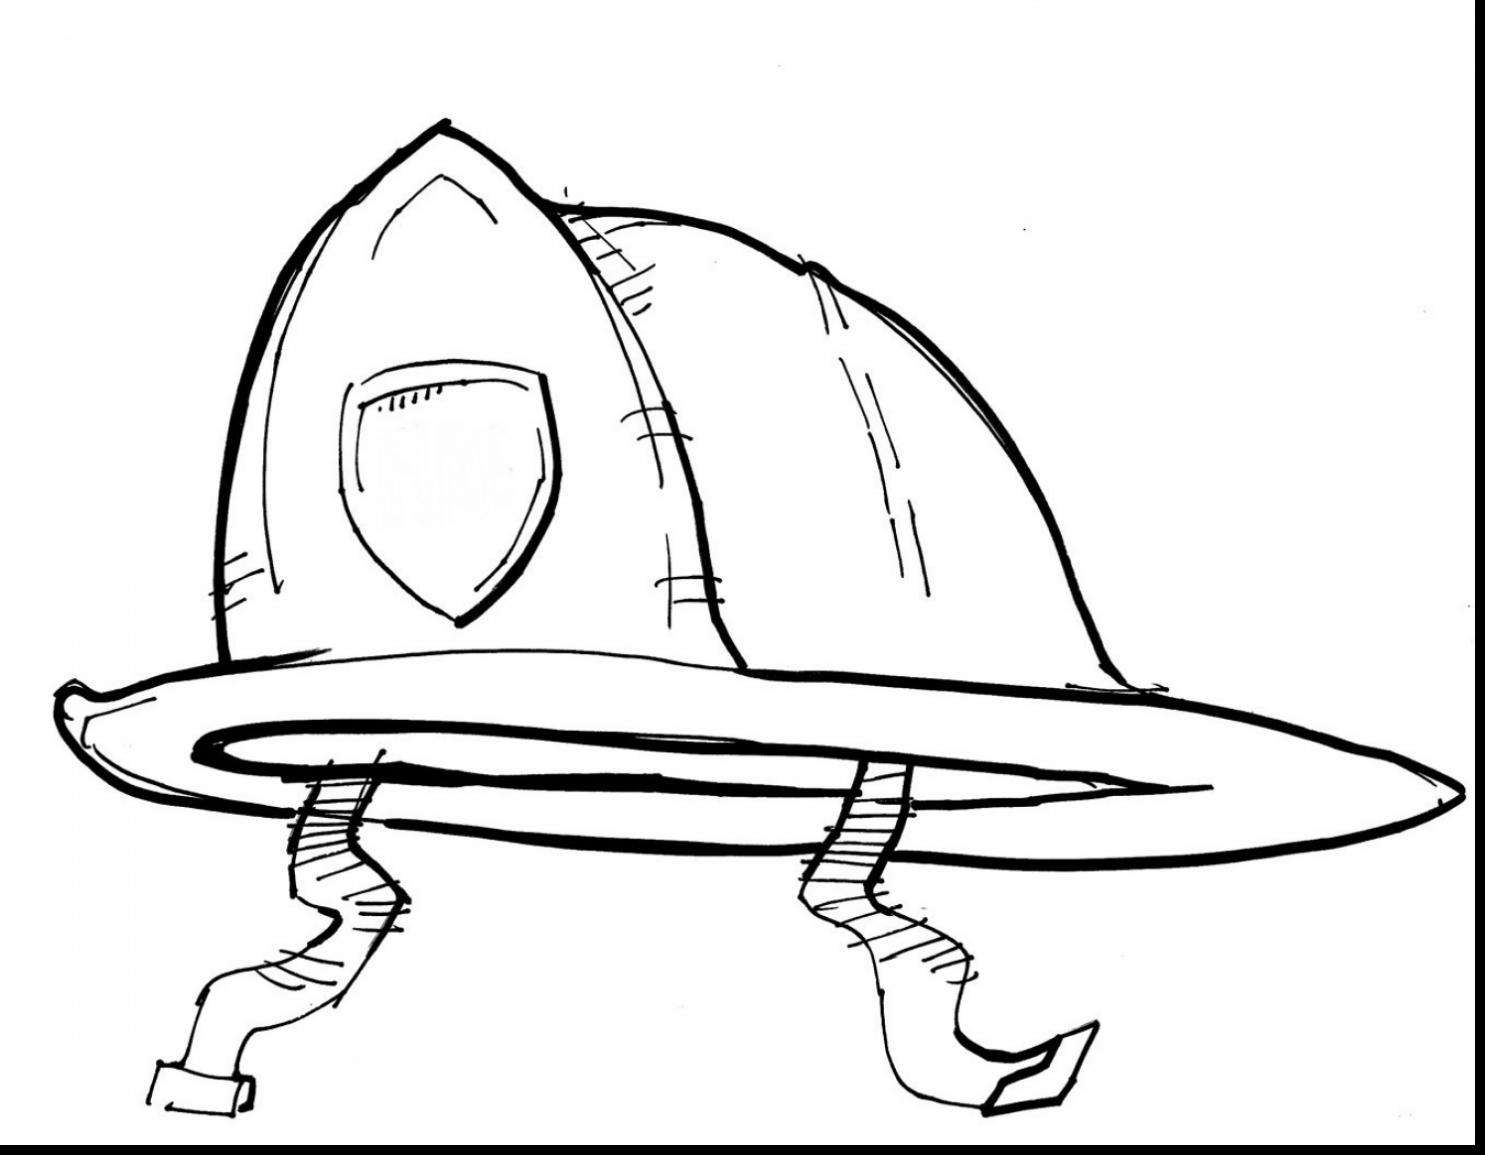 1485x1155 Fireman Hat Coloring Page Fireman's Hat Coloring Page